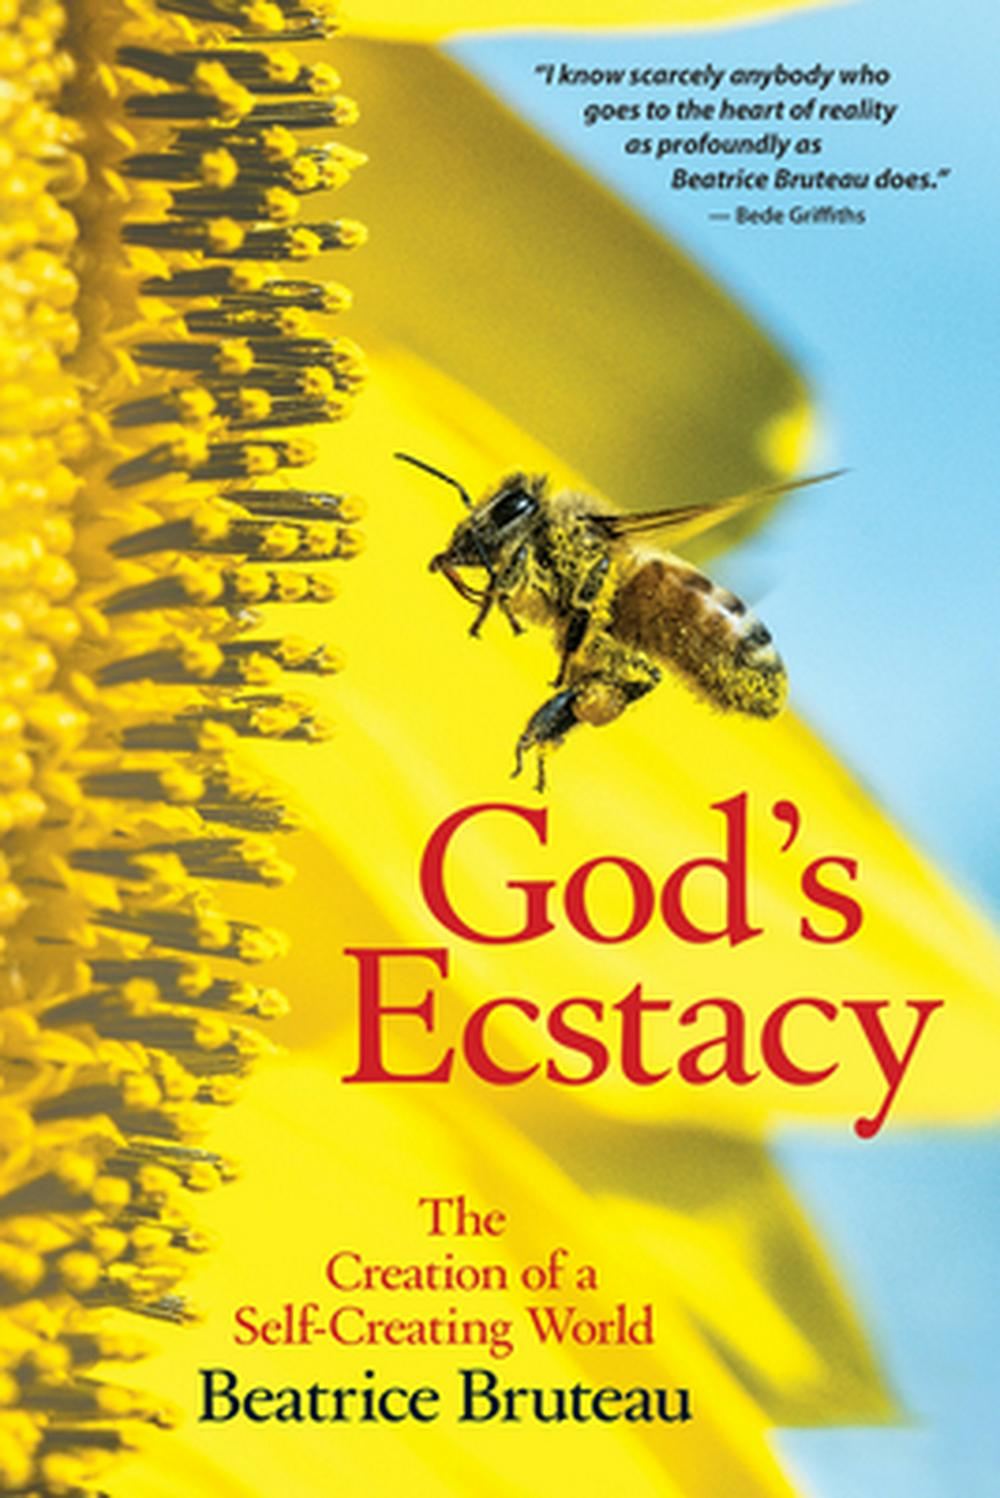 God's Ecstasy by Beatrice Bruteau, ISBN: 9780824516833